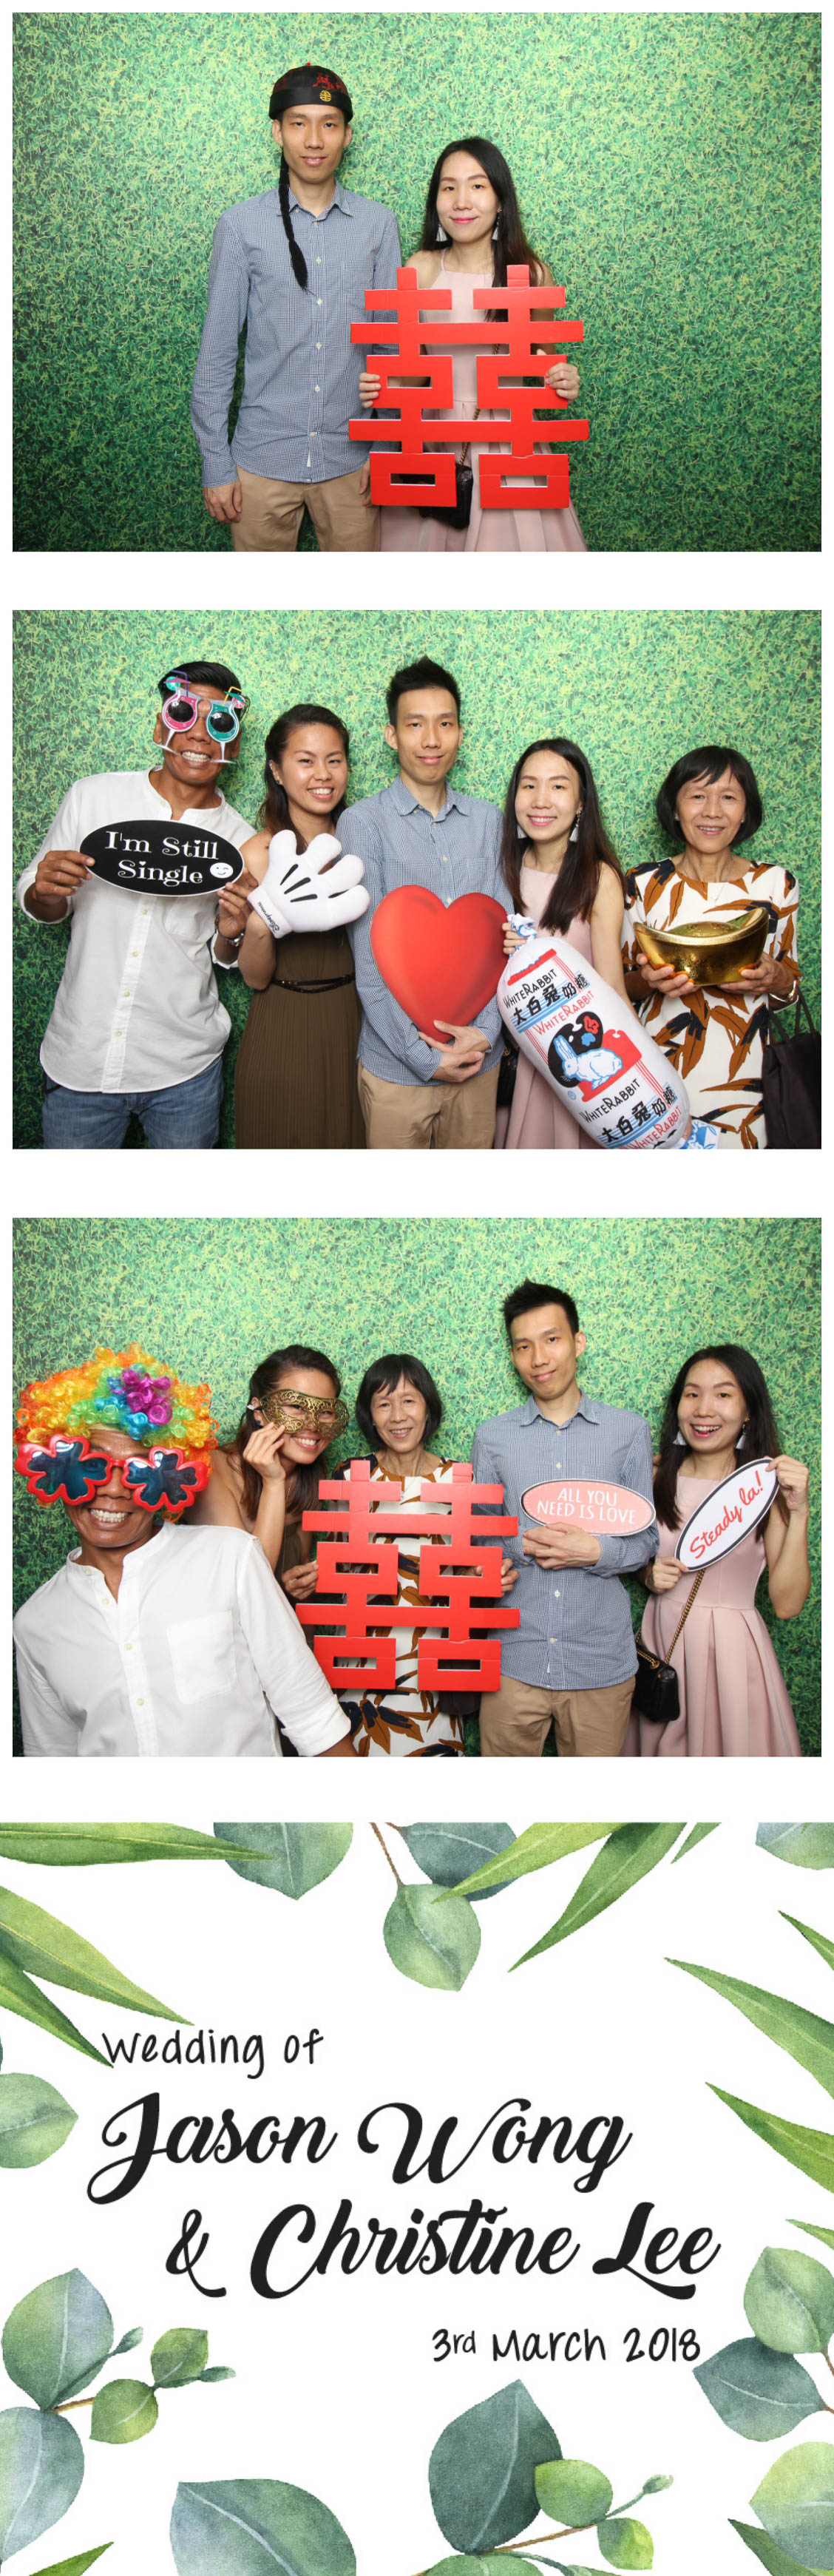 Photobooth 0302-18